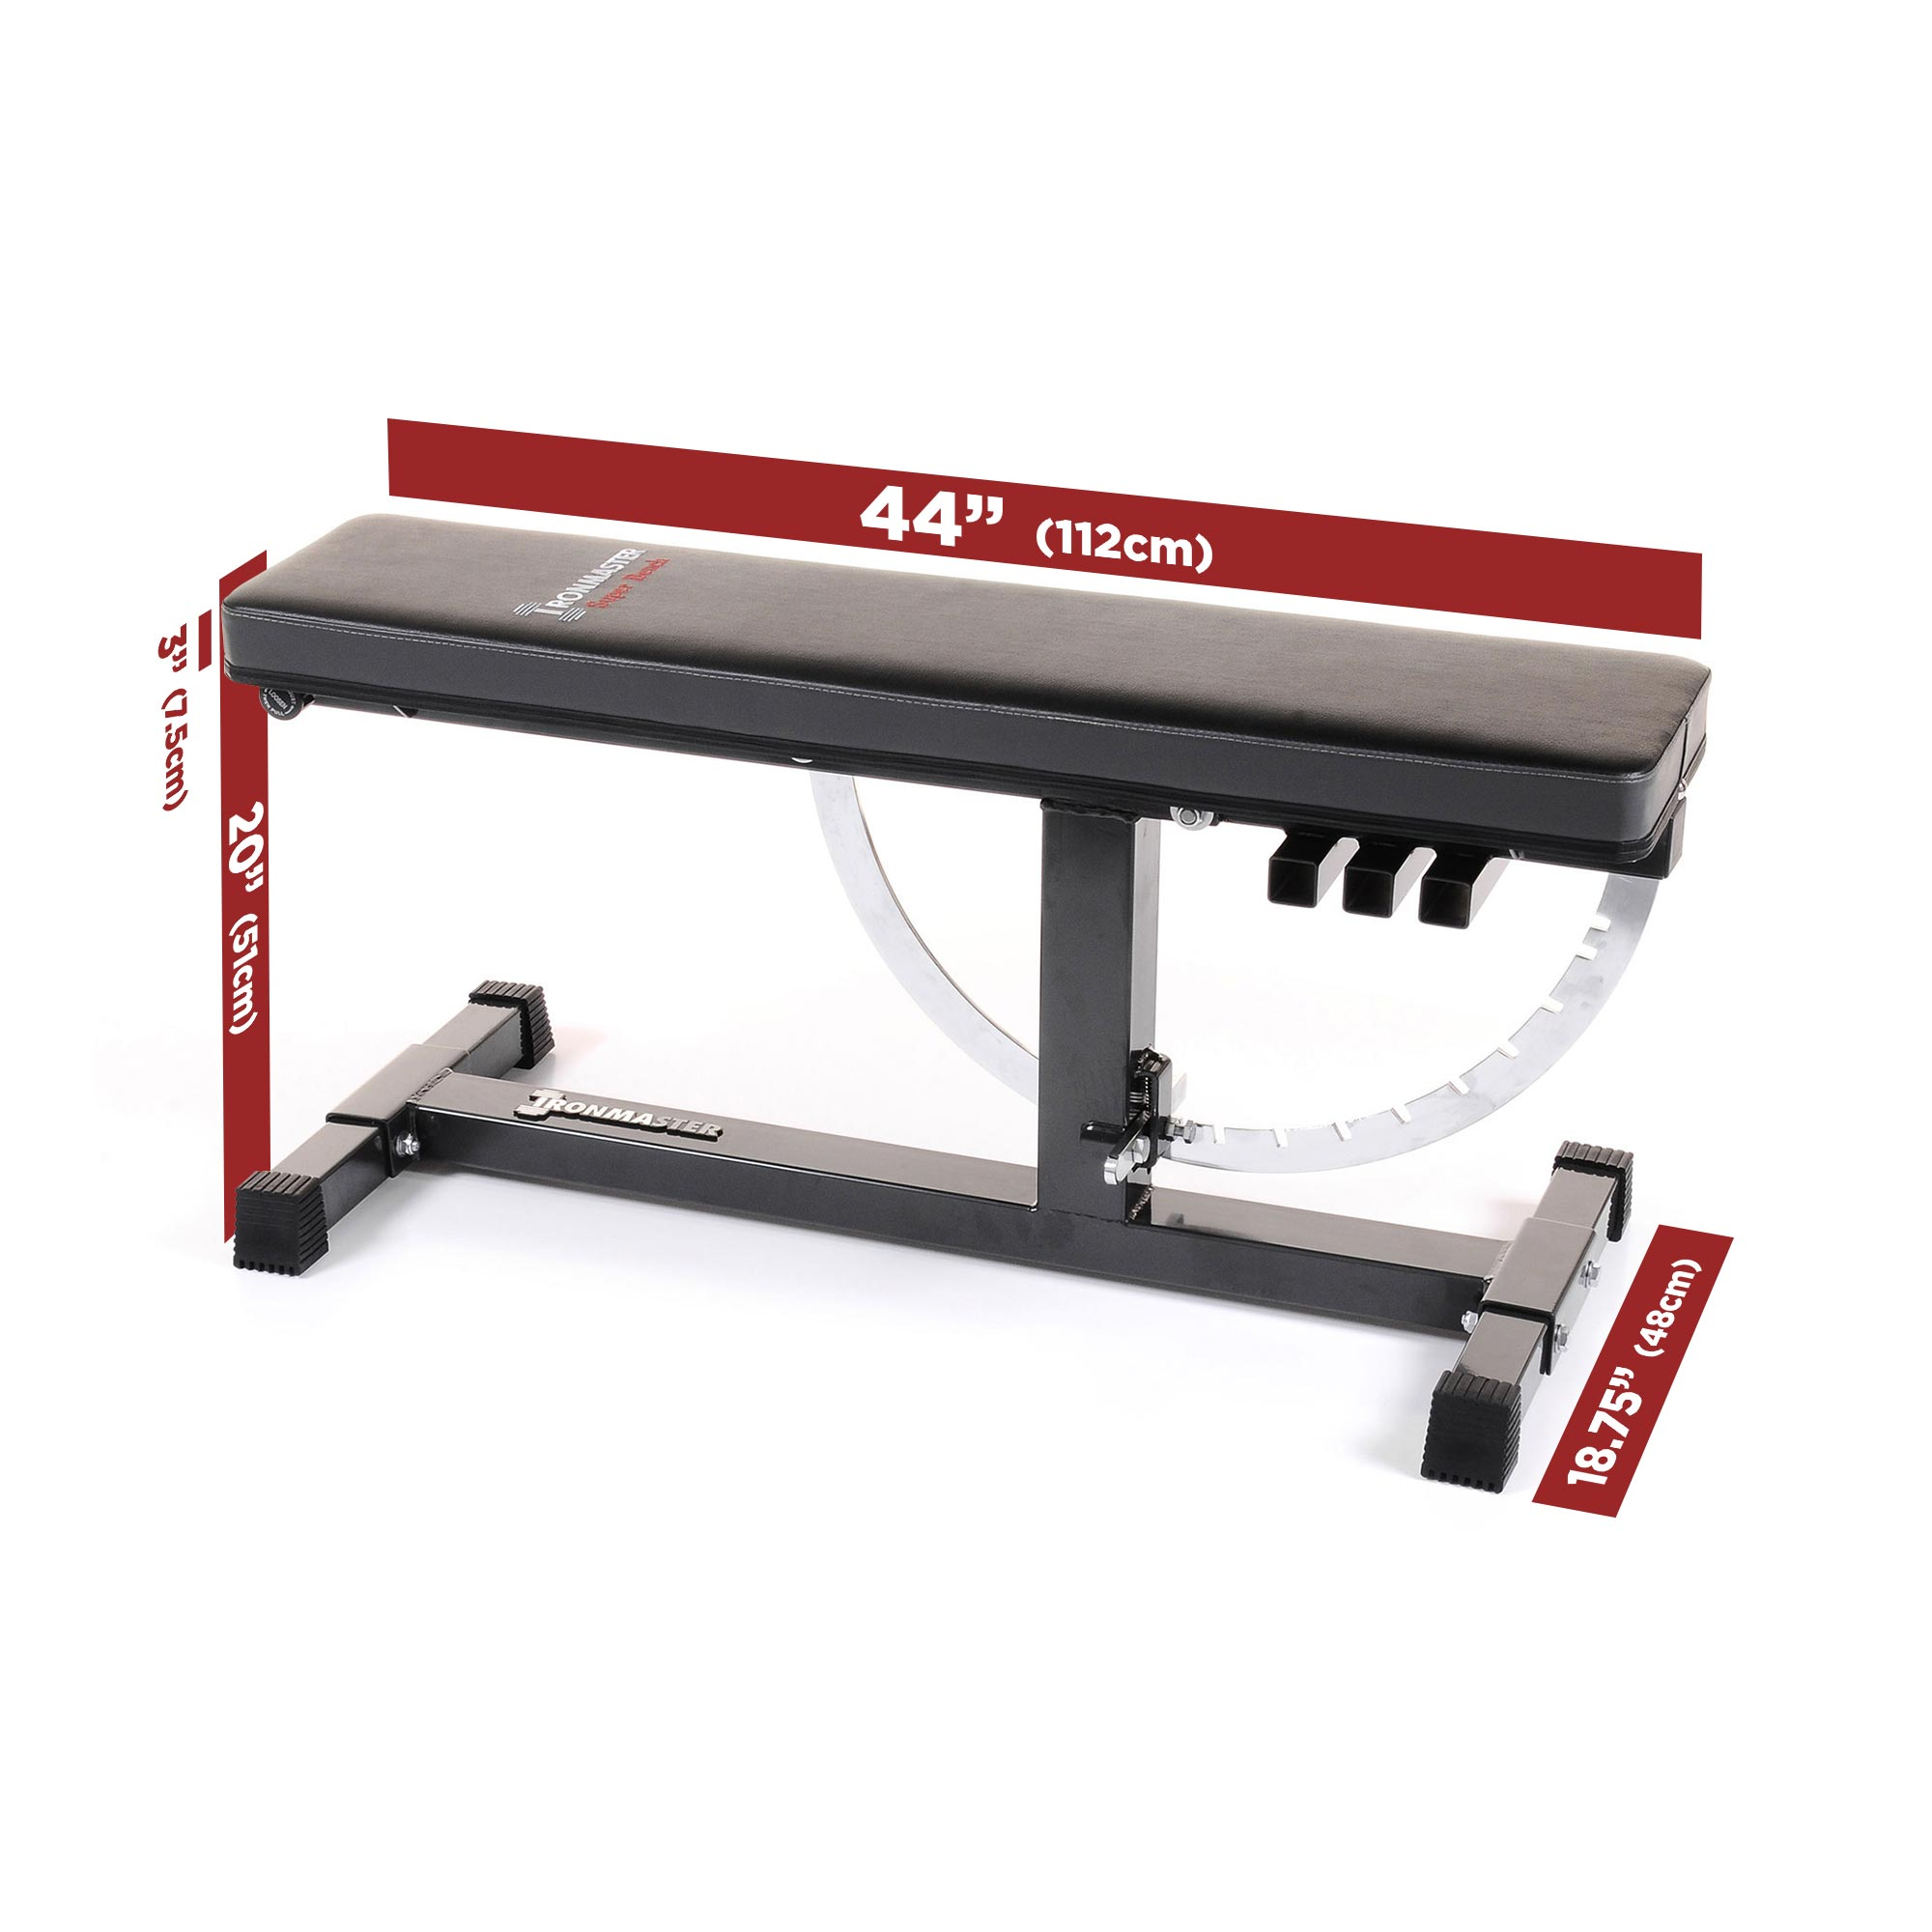 IronmasterUK Super Bench Size Specifications